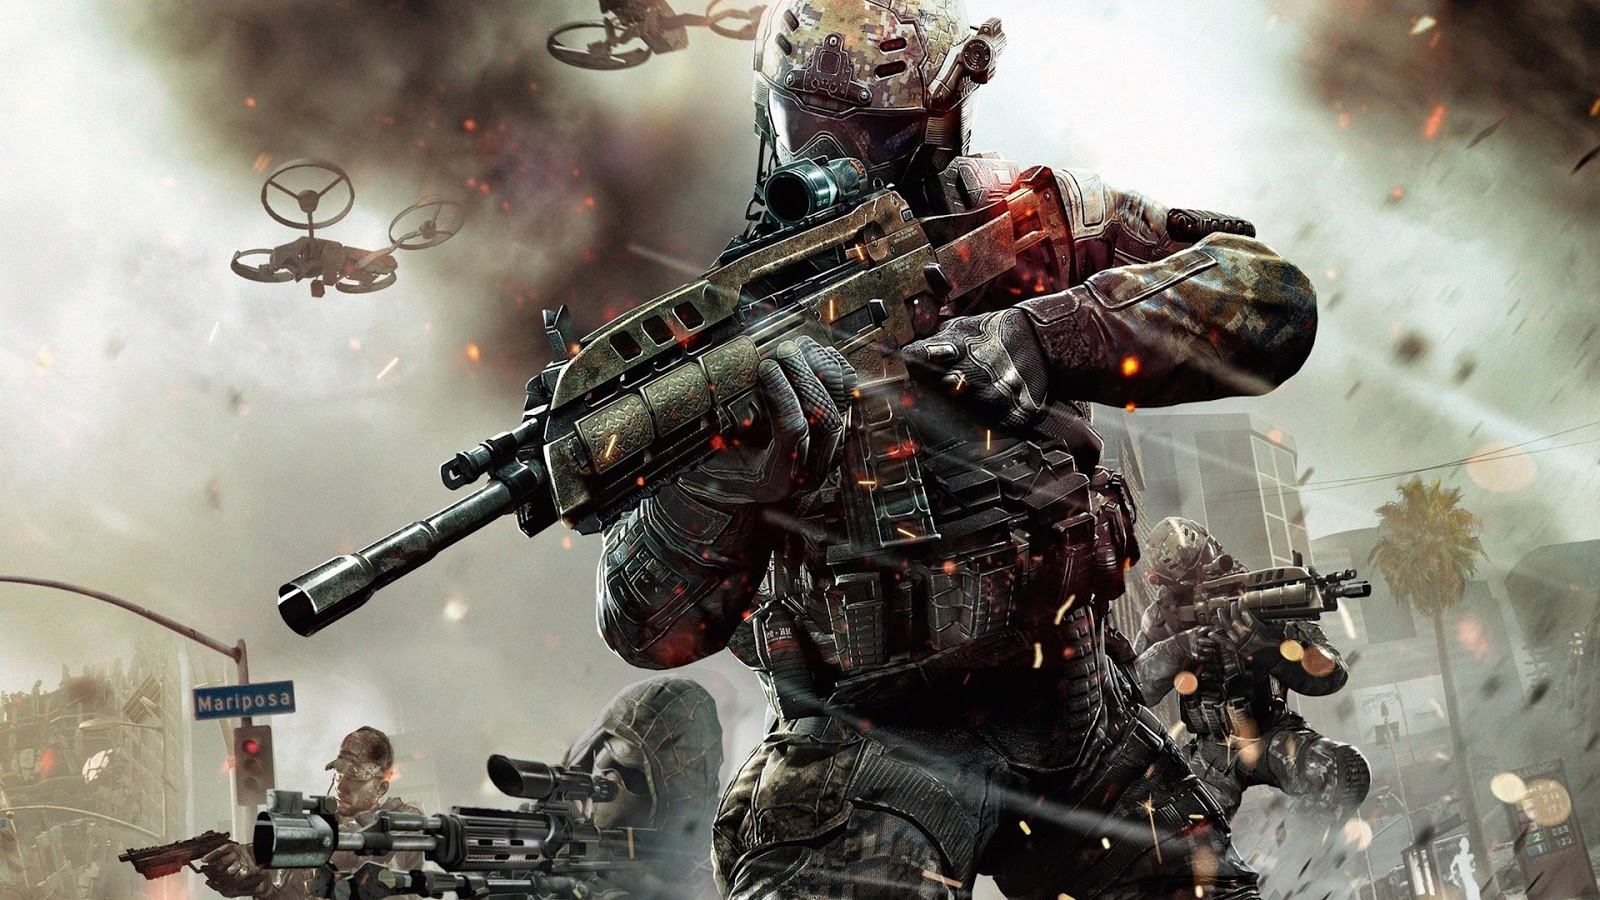 Call Of Duty Wallpaper Hd: CALL OF DUTY WALLPAPERS